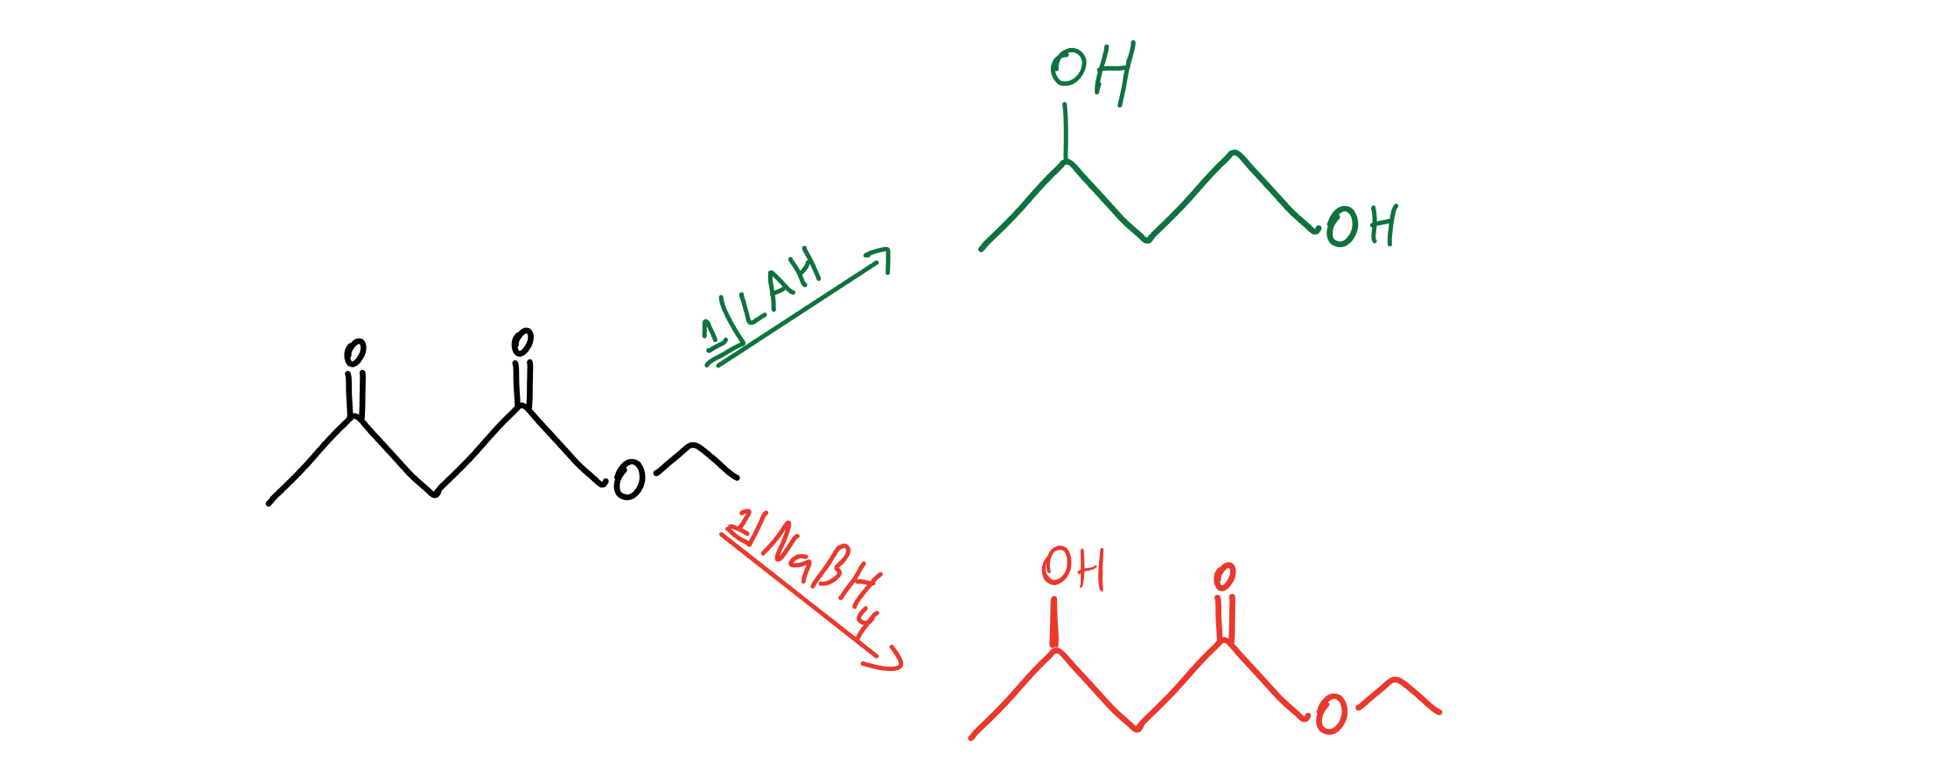 Chemoselective reduction of a beta-ketoester